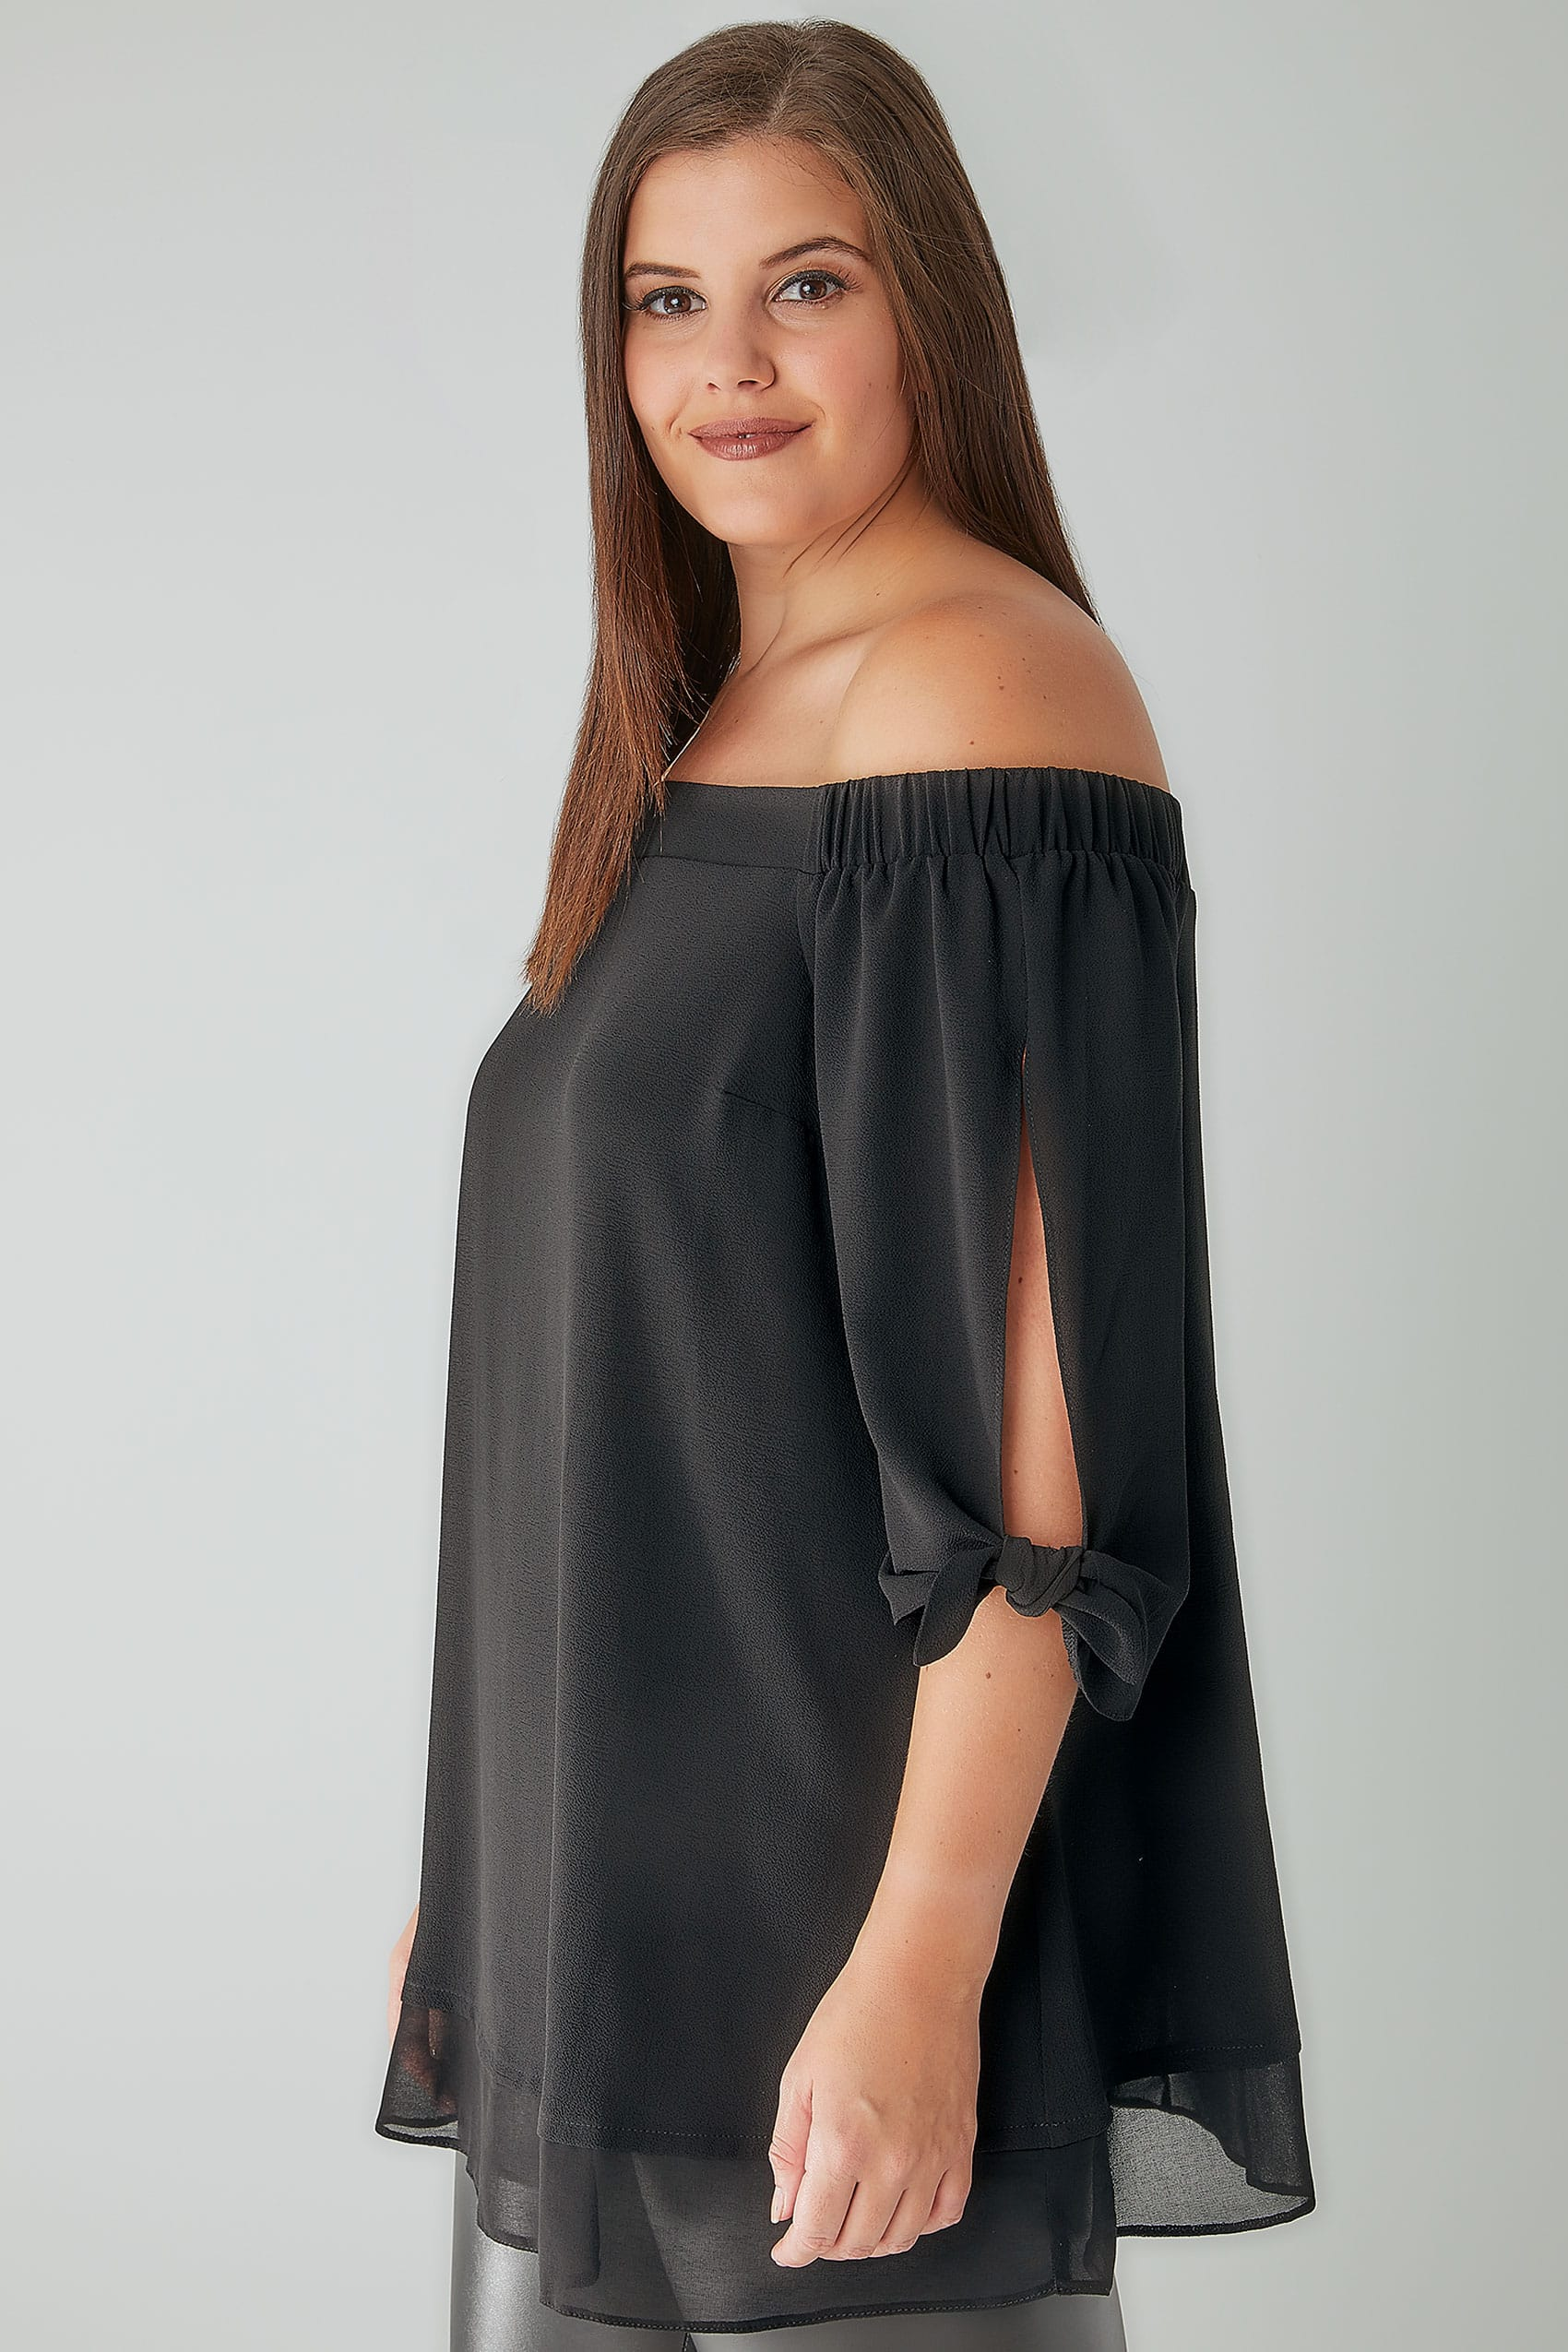 black bardot layered hem swing top with open tie detail sleeve plus size 16 to 36. Black Bedroom Furniture Sets. Home Design Ideas